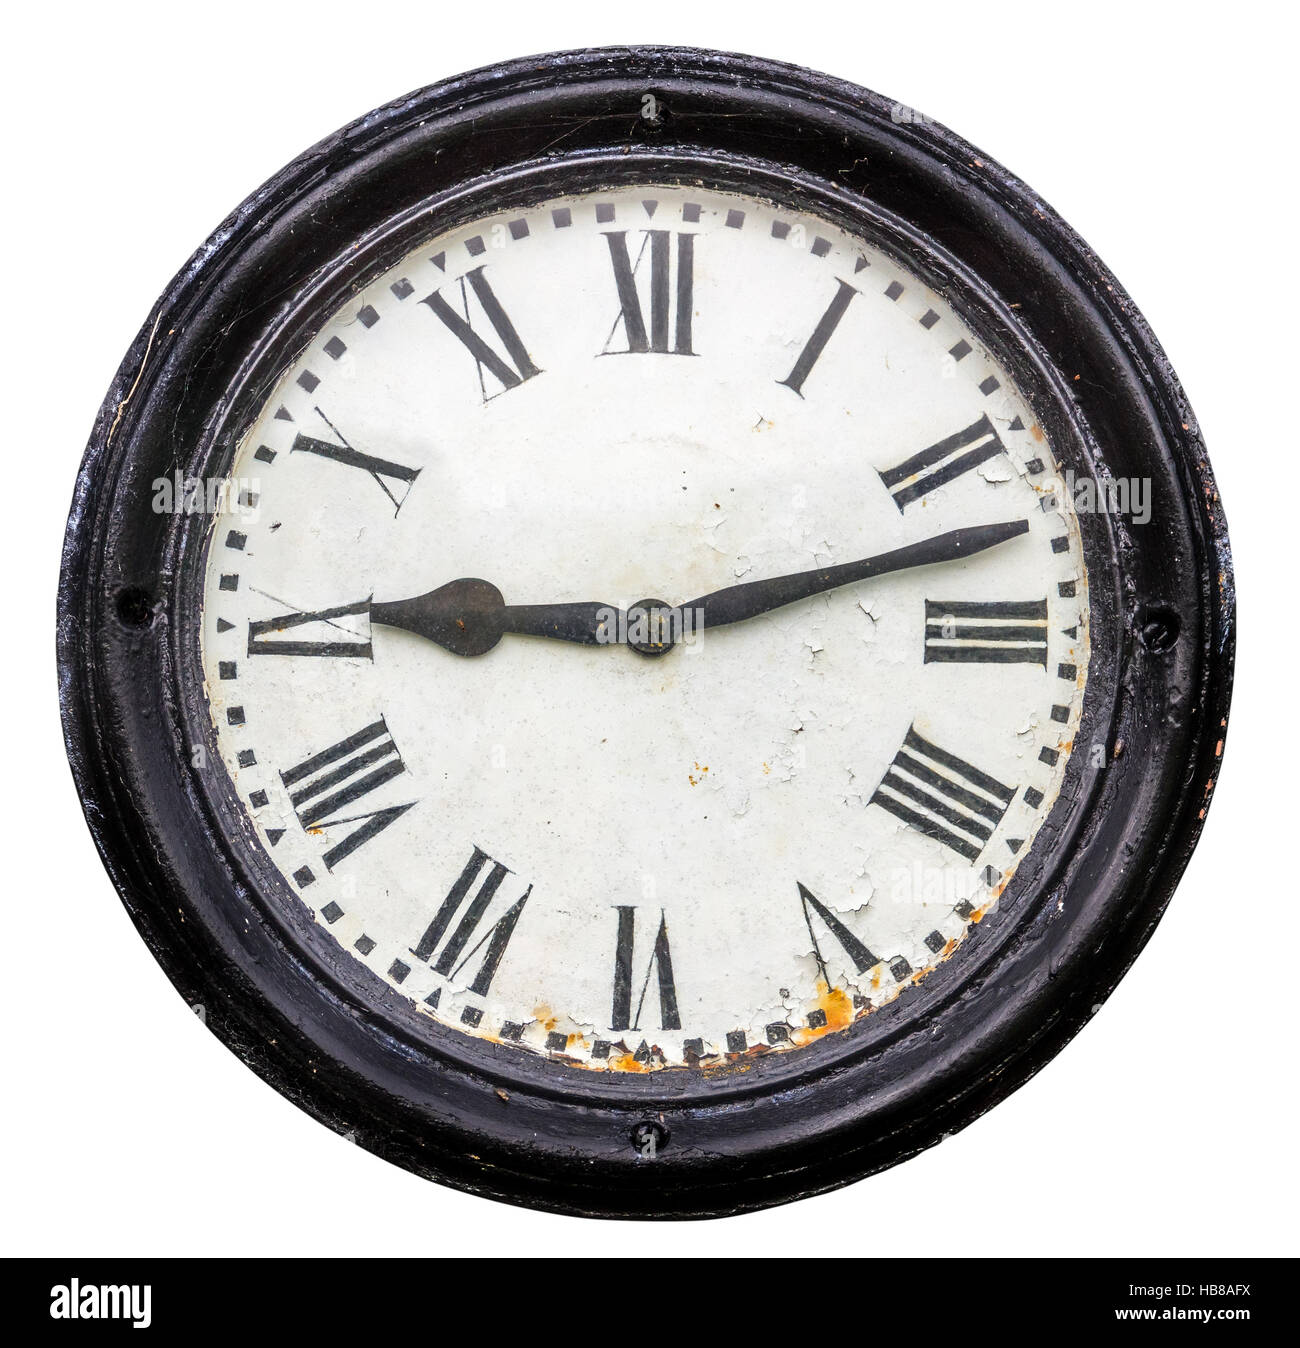 Rustic Old Roman Numeral Station Clock Face - Stock Image